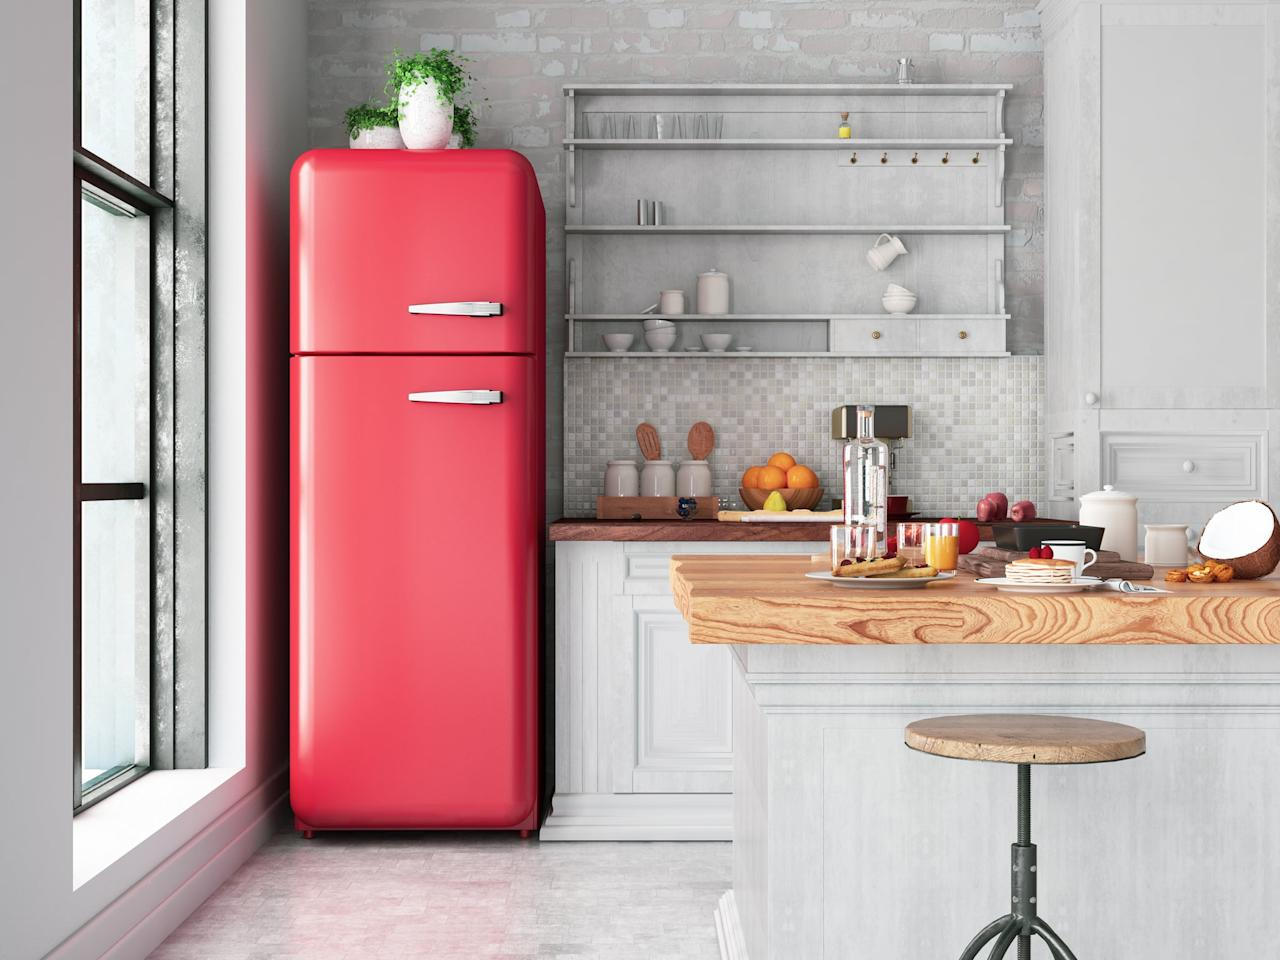 <p>Next time you clean out your refrigerator, get out the WD-40 for caked-on messes that water and soap can't clean. </p>